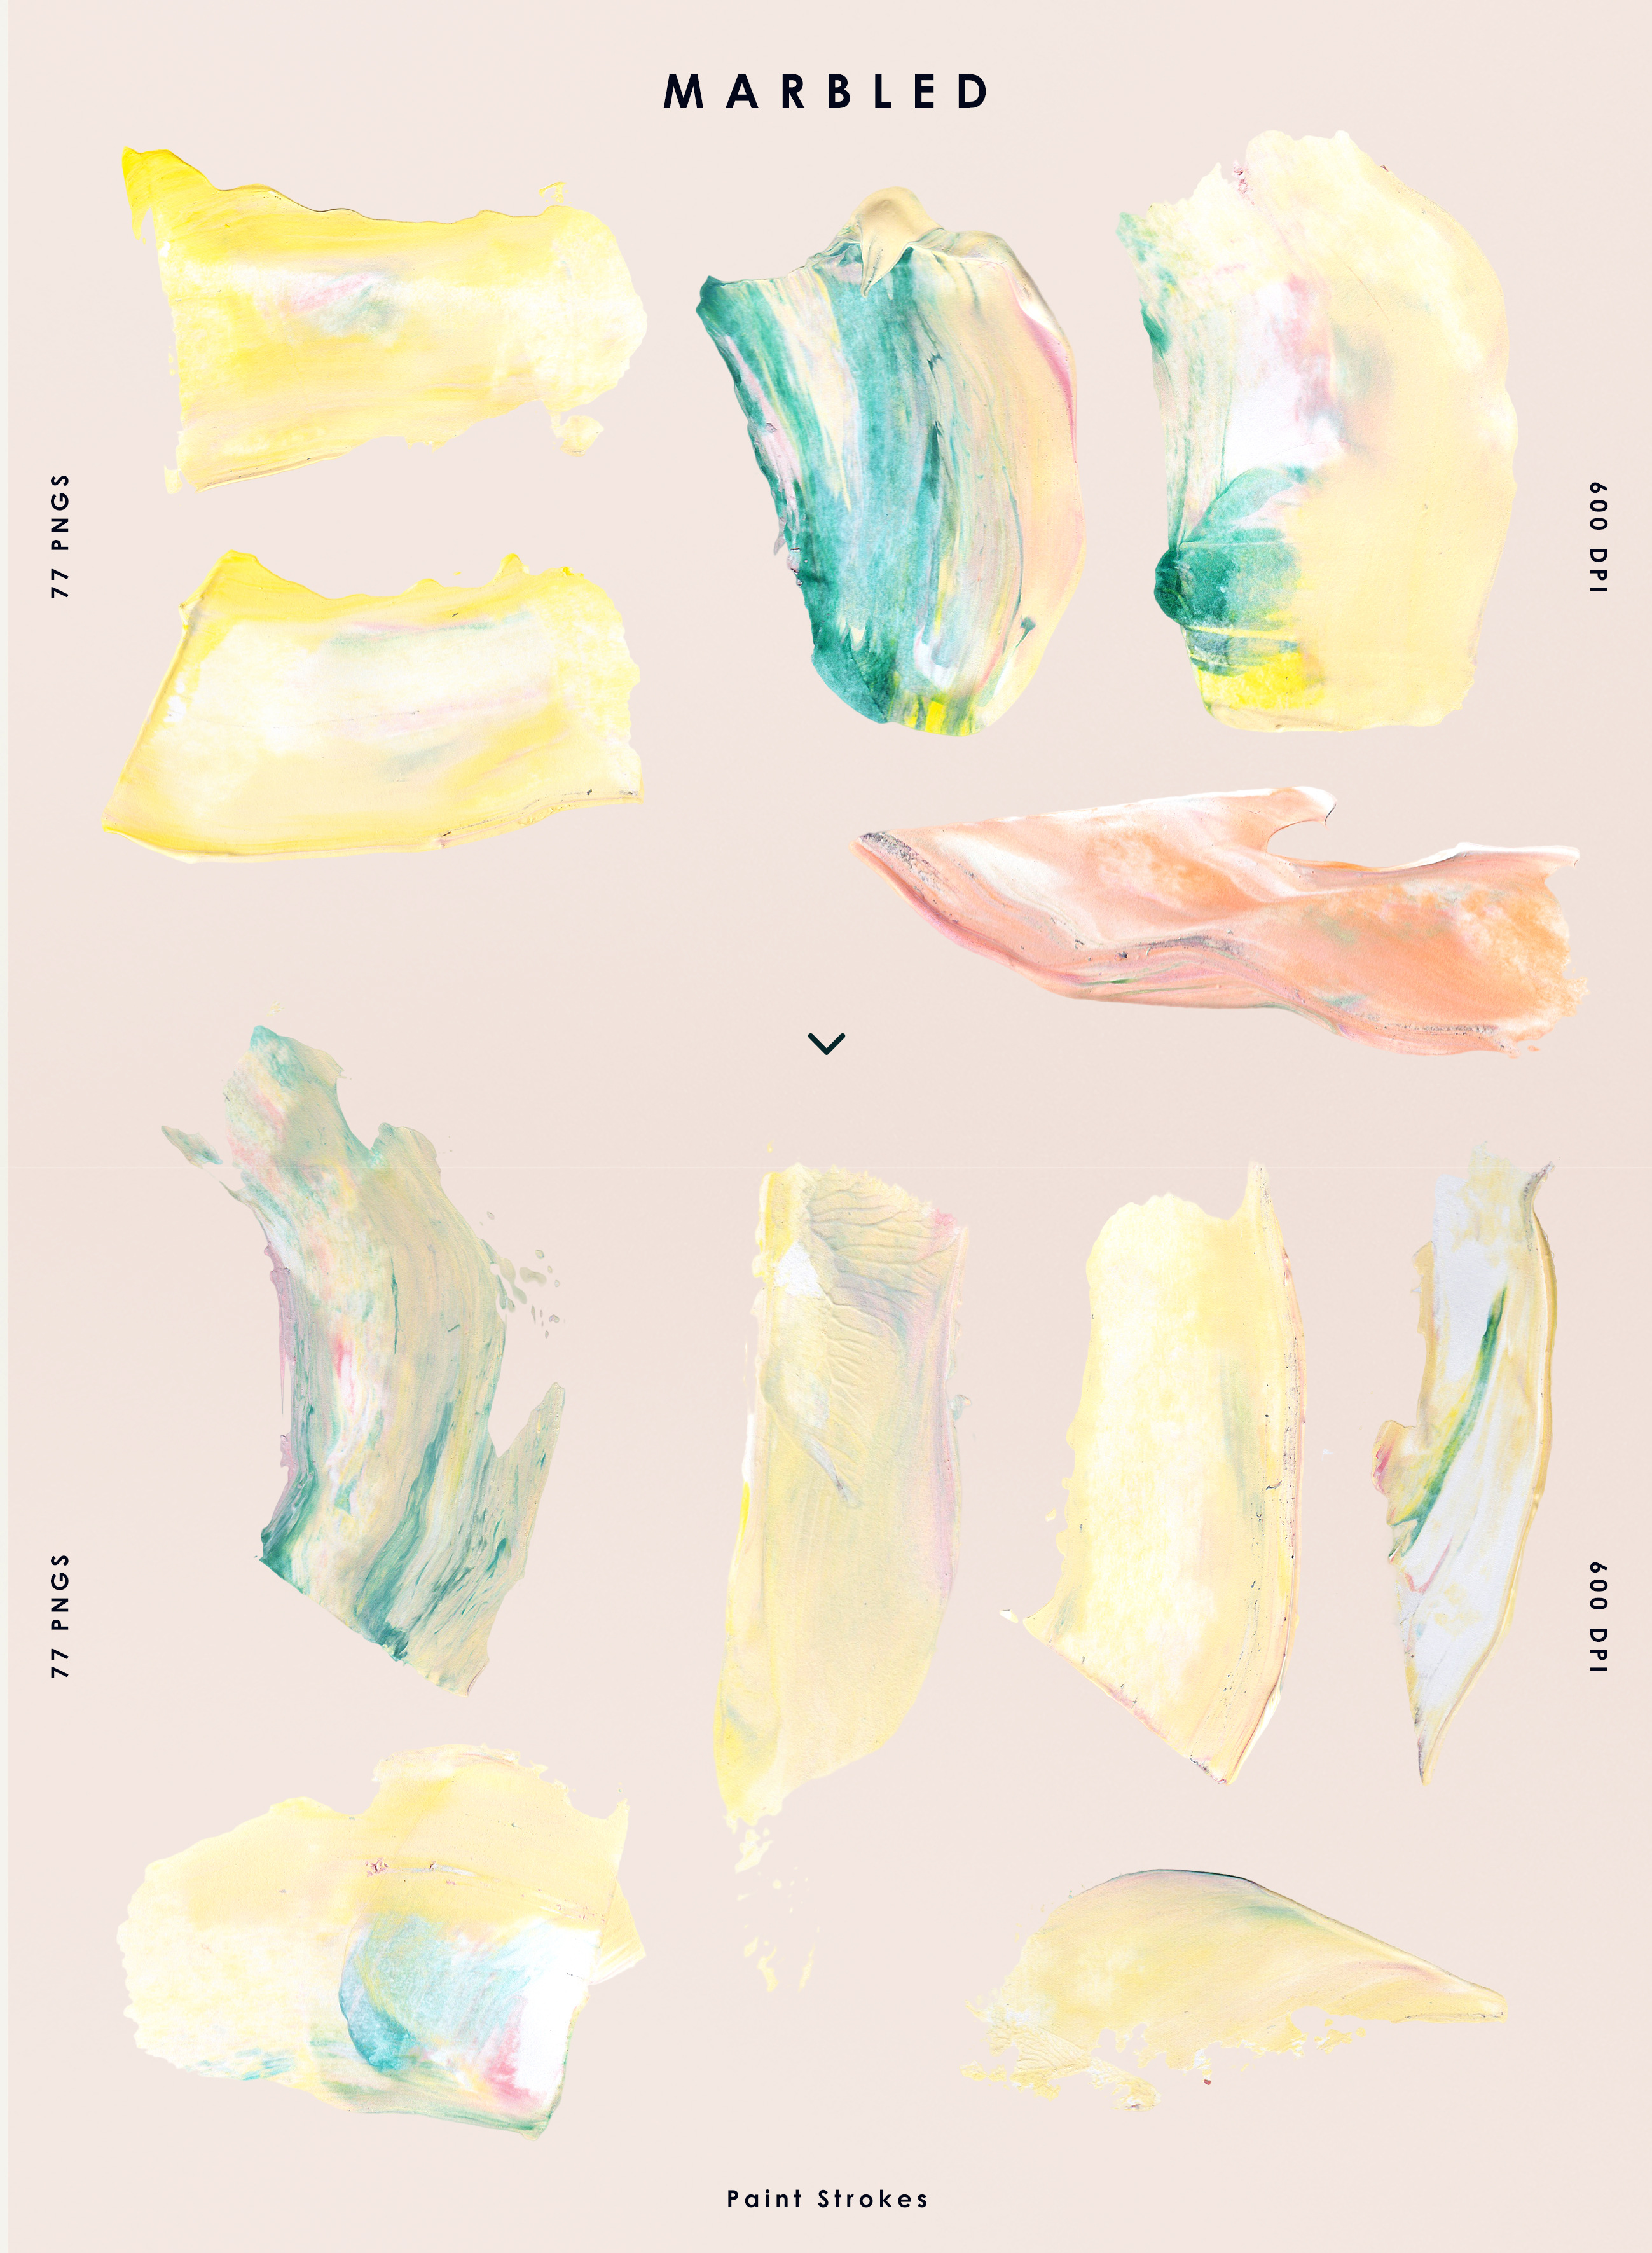 Marbled Paint Stroke Cut Outs